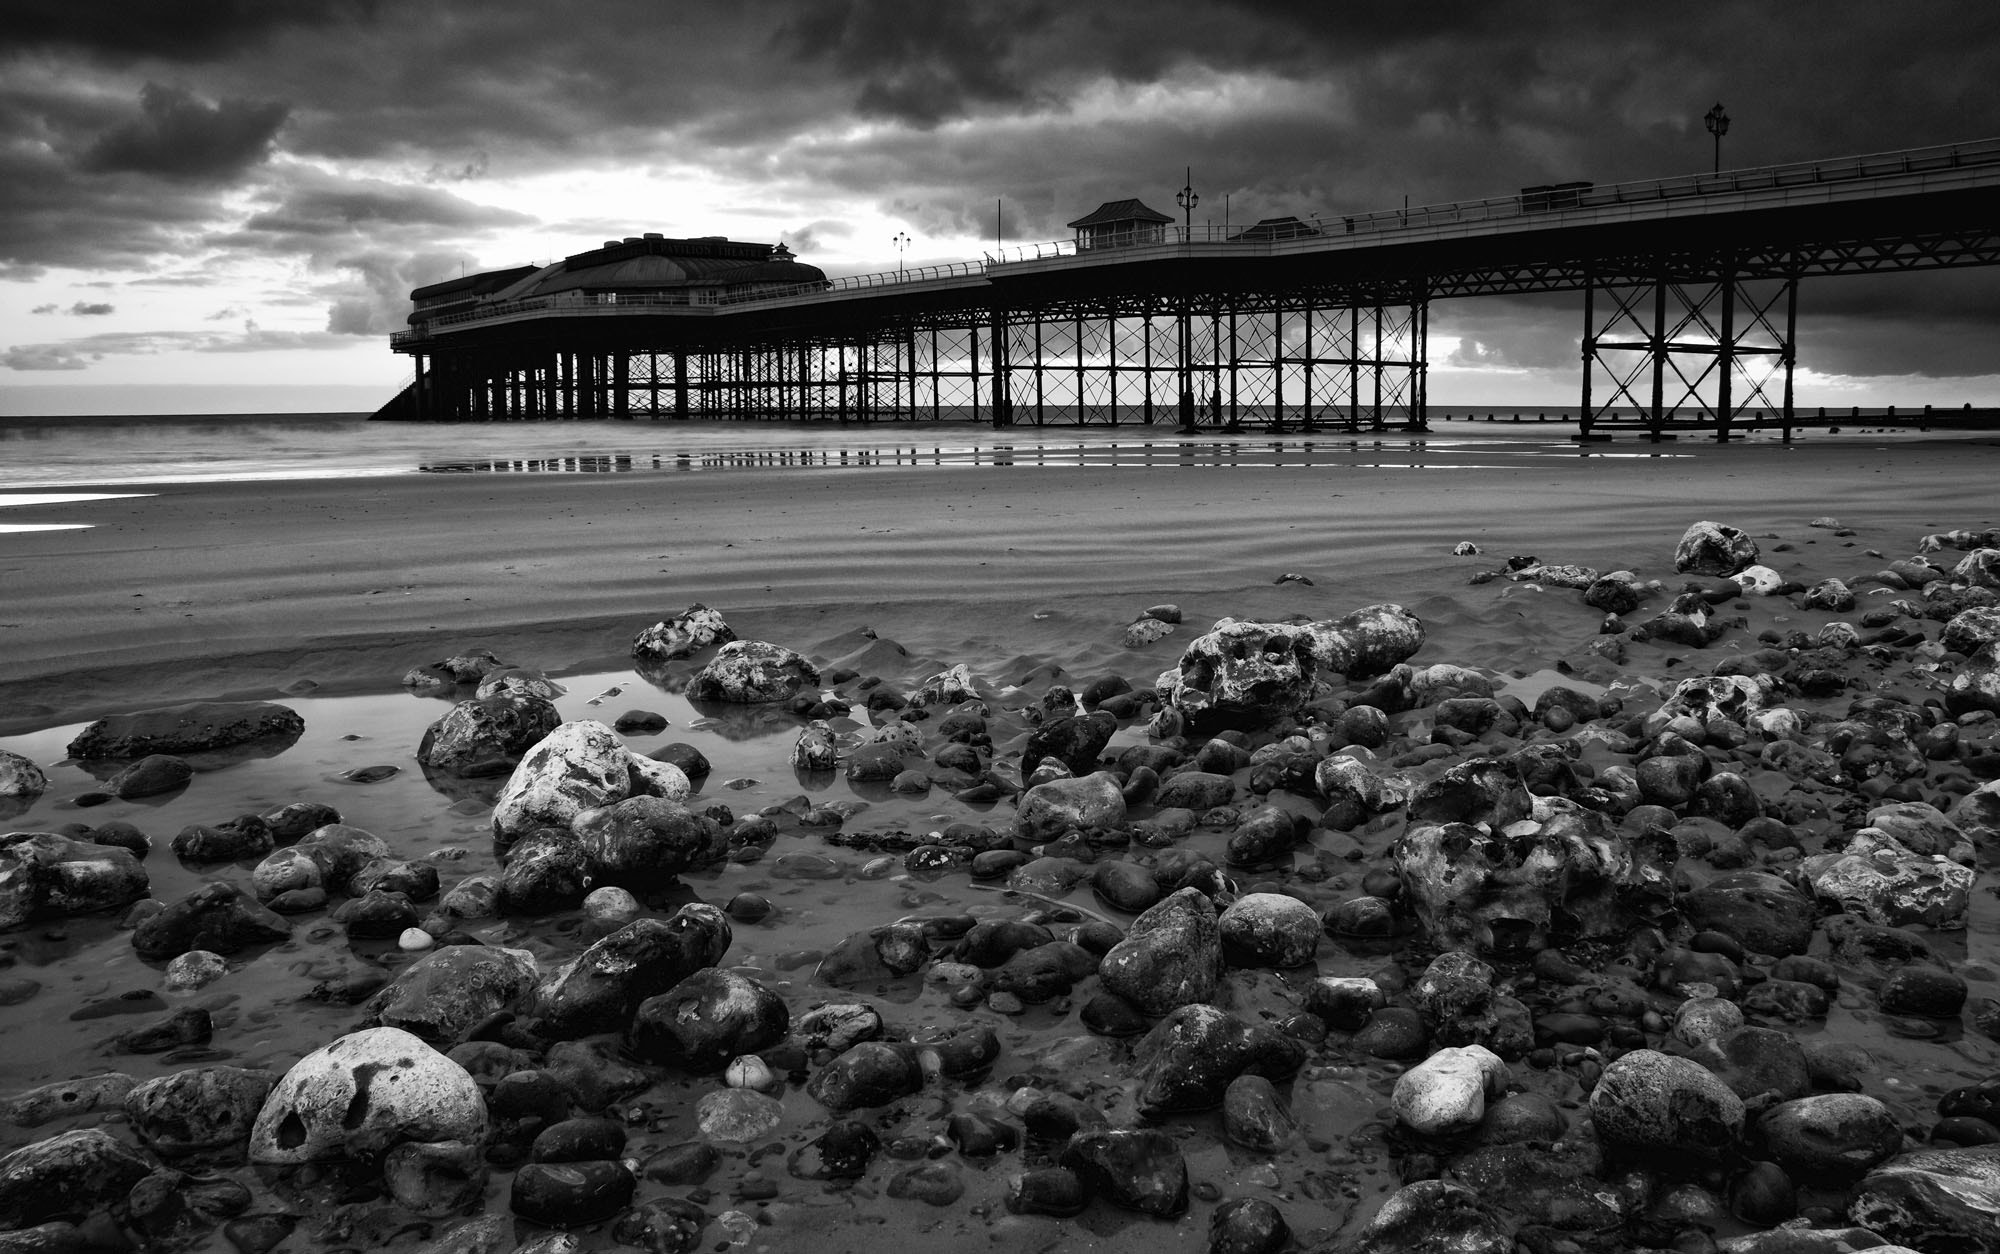 Photograph Pier by Gail Sparks on 500px